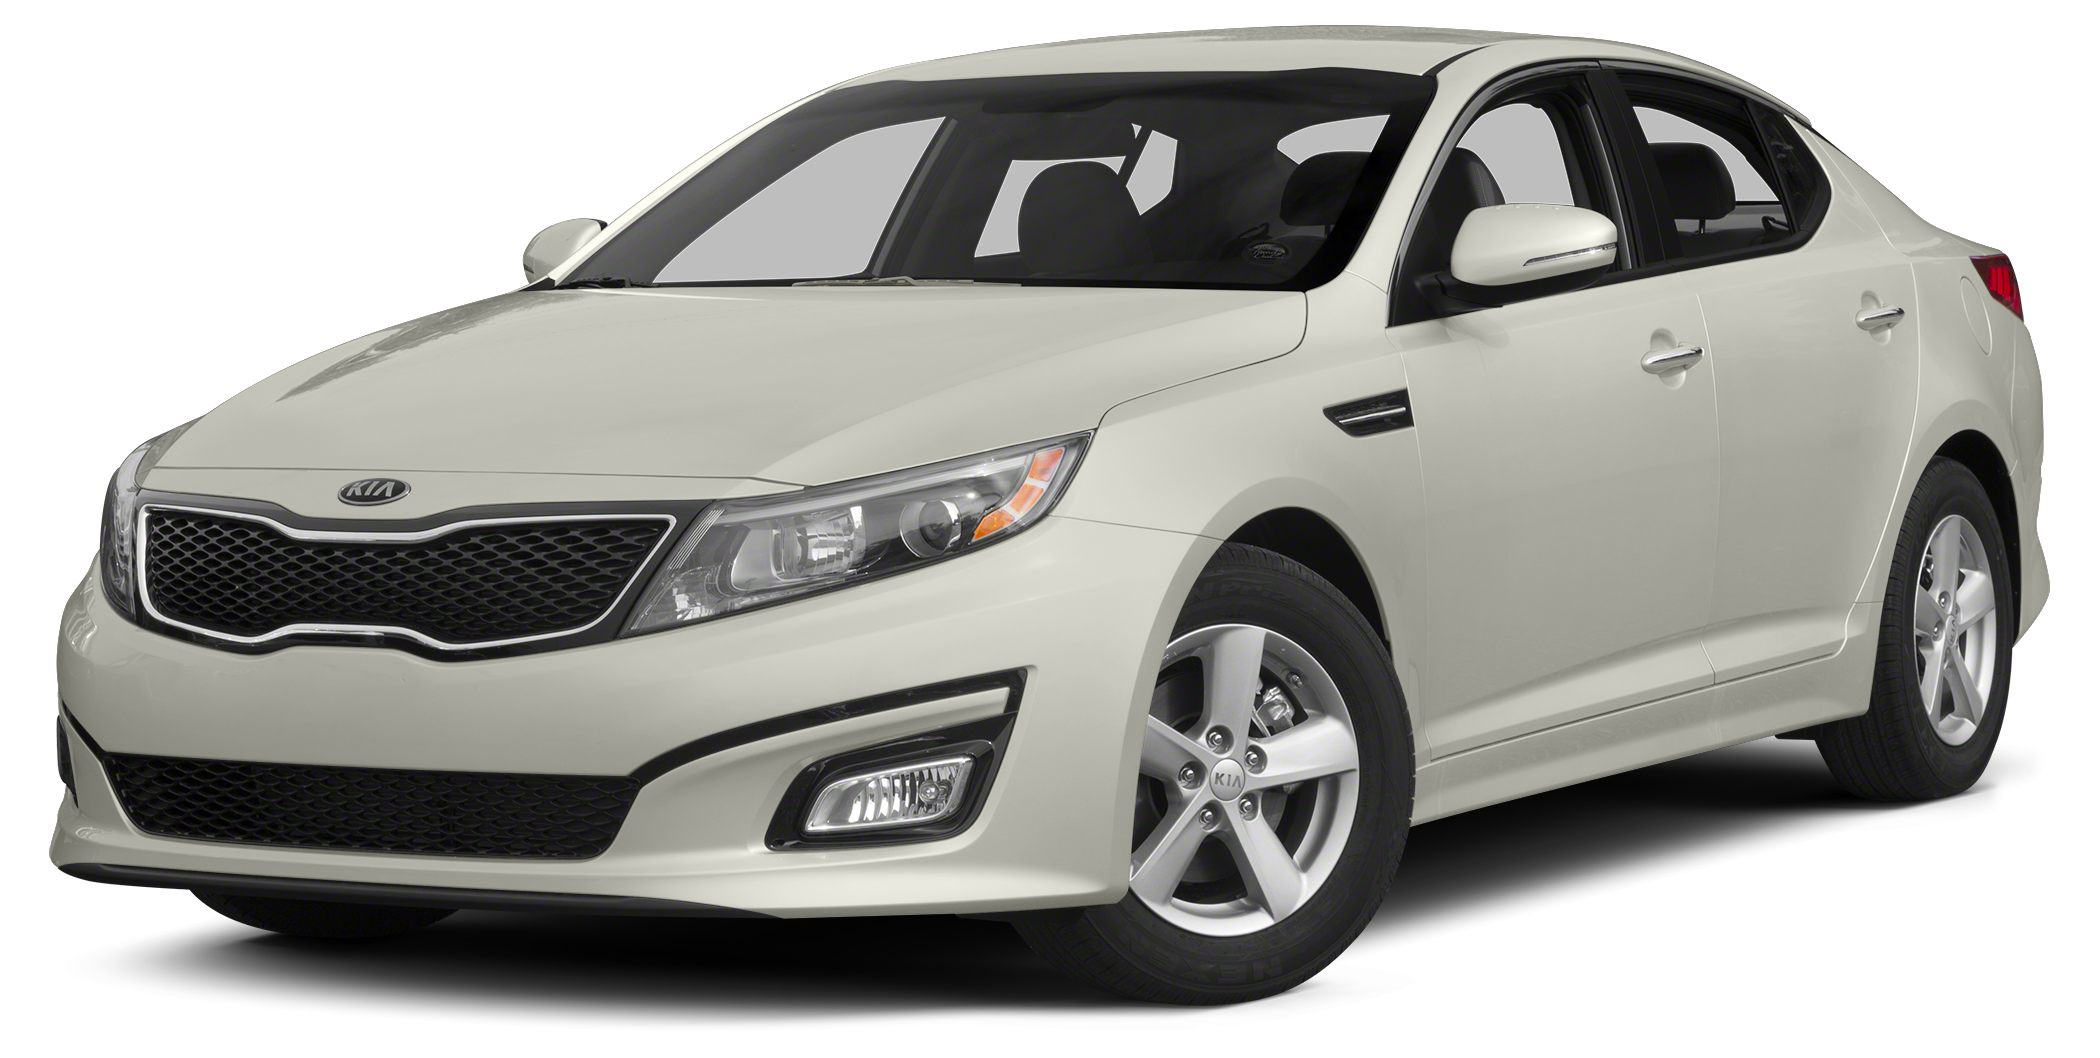 2015 Kia Optima EX Miles 26296Color Snow White Pearl Stock K14371A VIN 5XXGN4A78FG396530